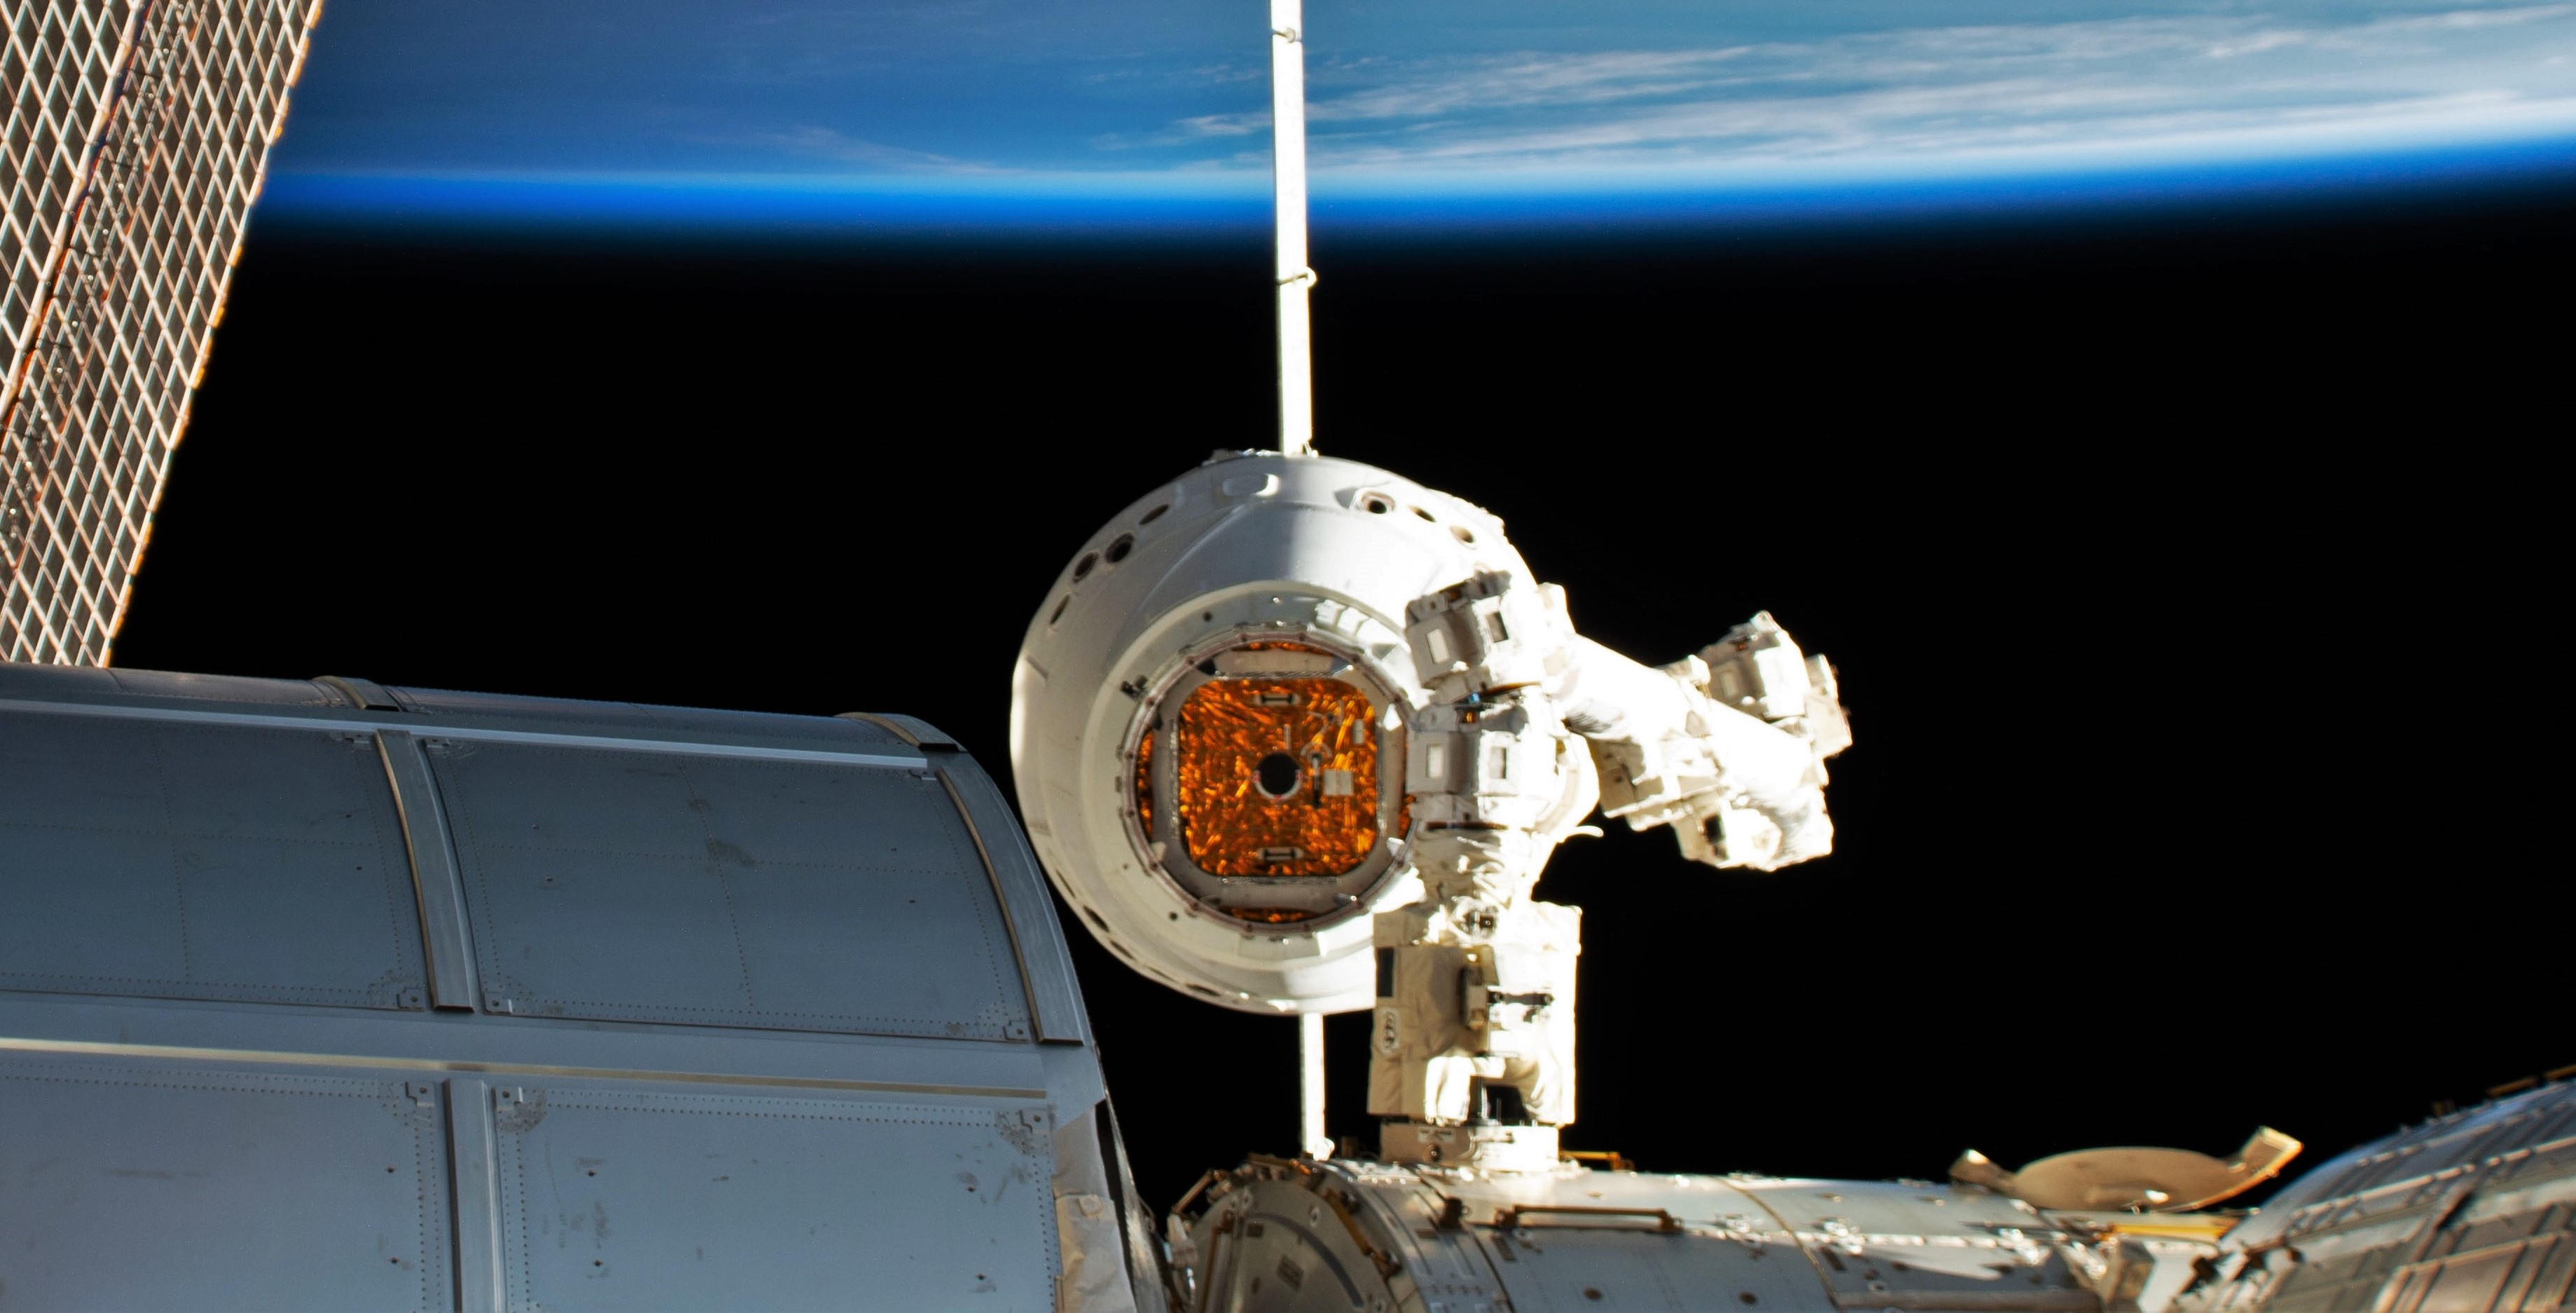 Cargo Dragon C113 CRS-17 ISS arrival 050619 (NASA) 7 crop